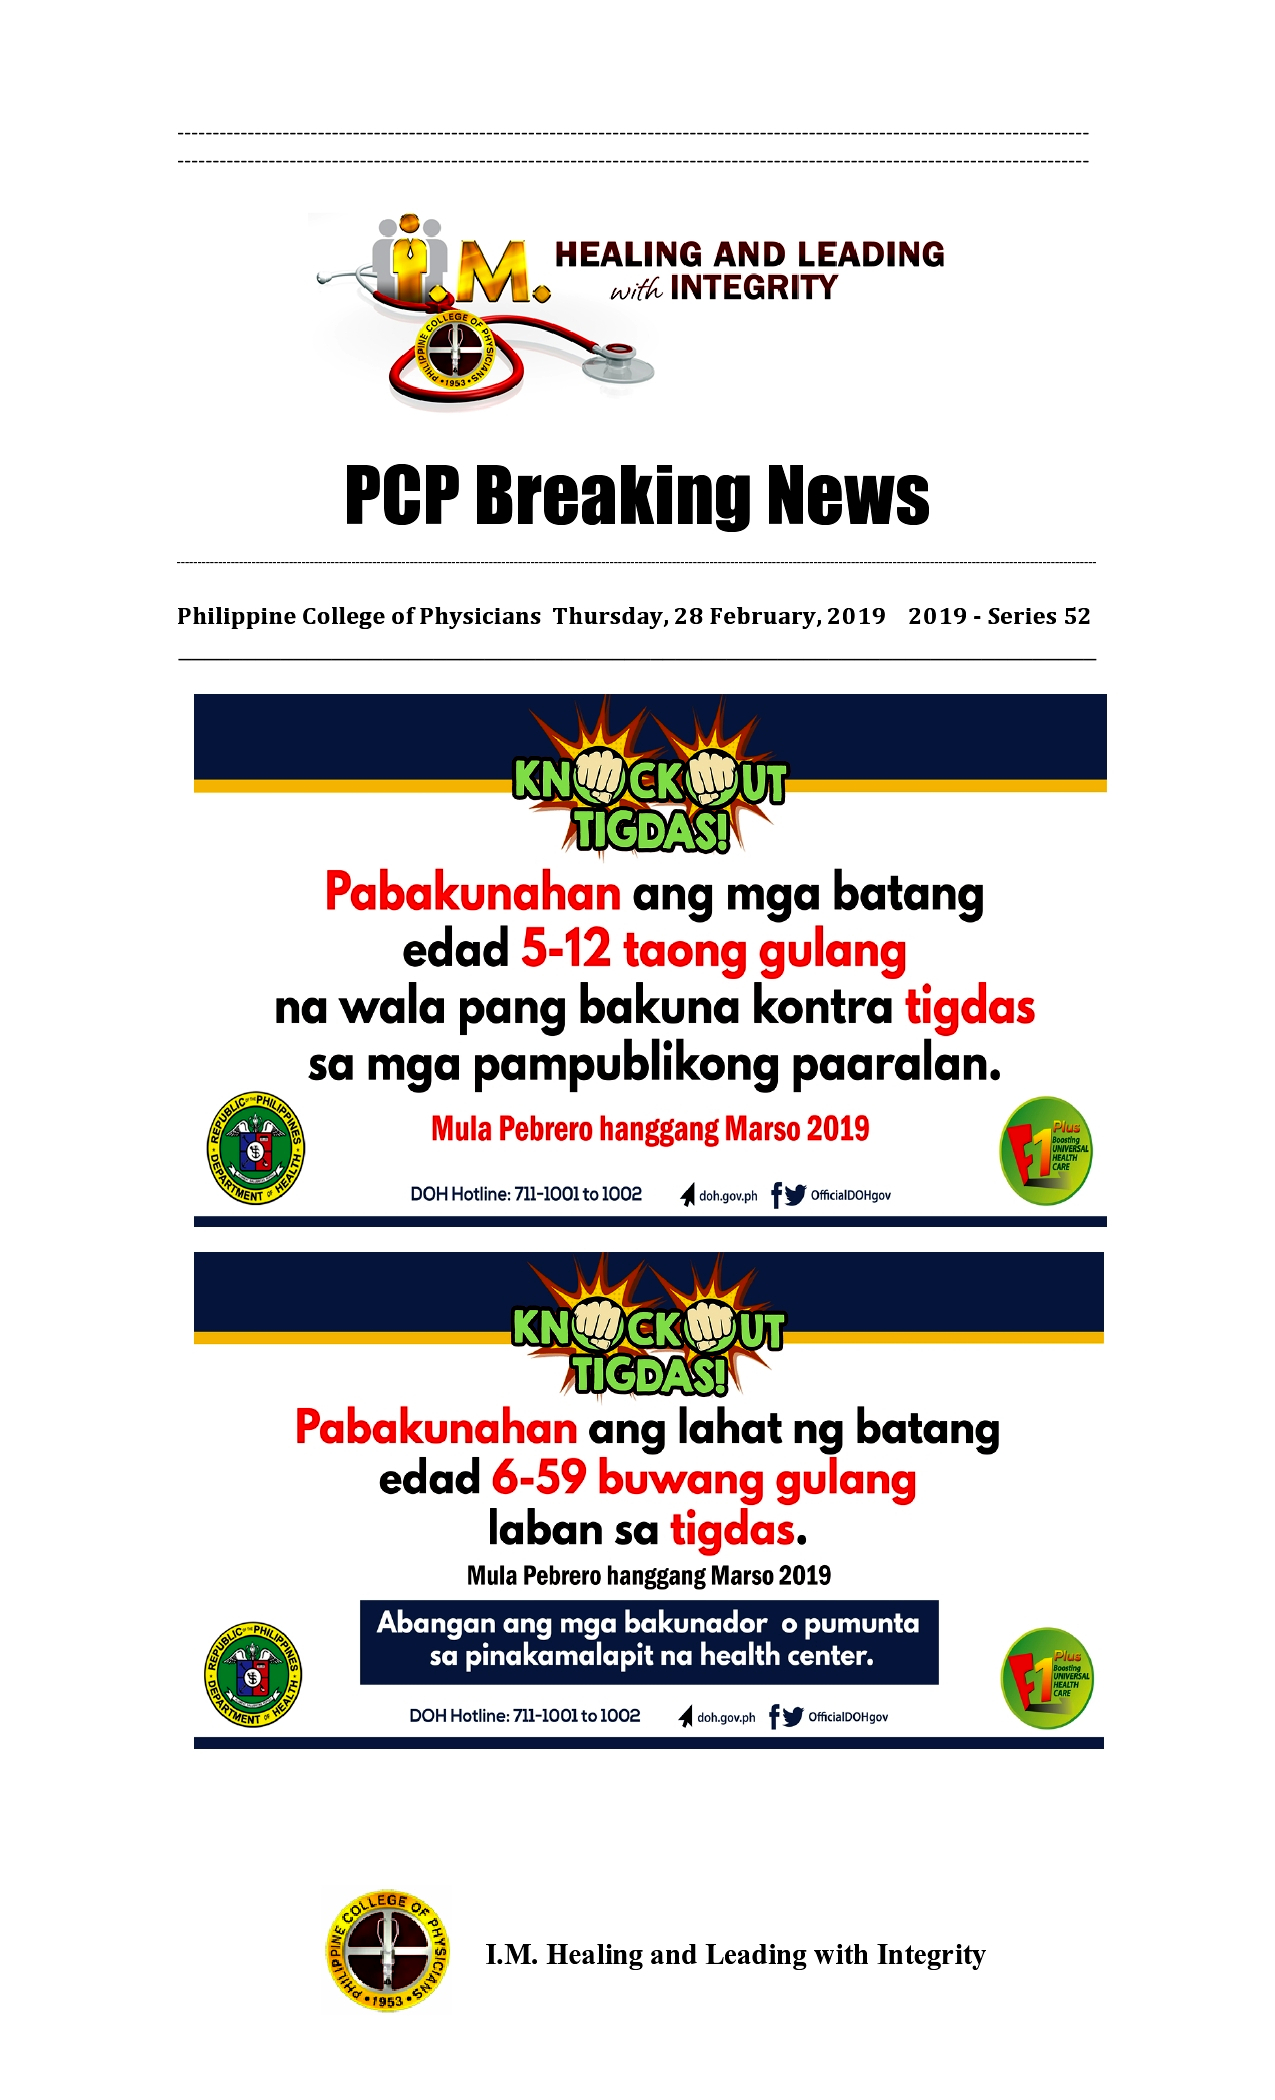 52nd PCP Breaking News KnockOut Tigdas